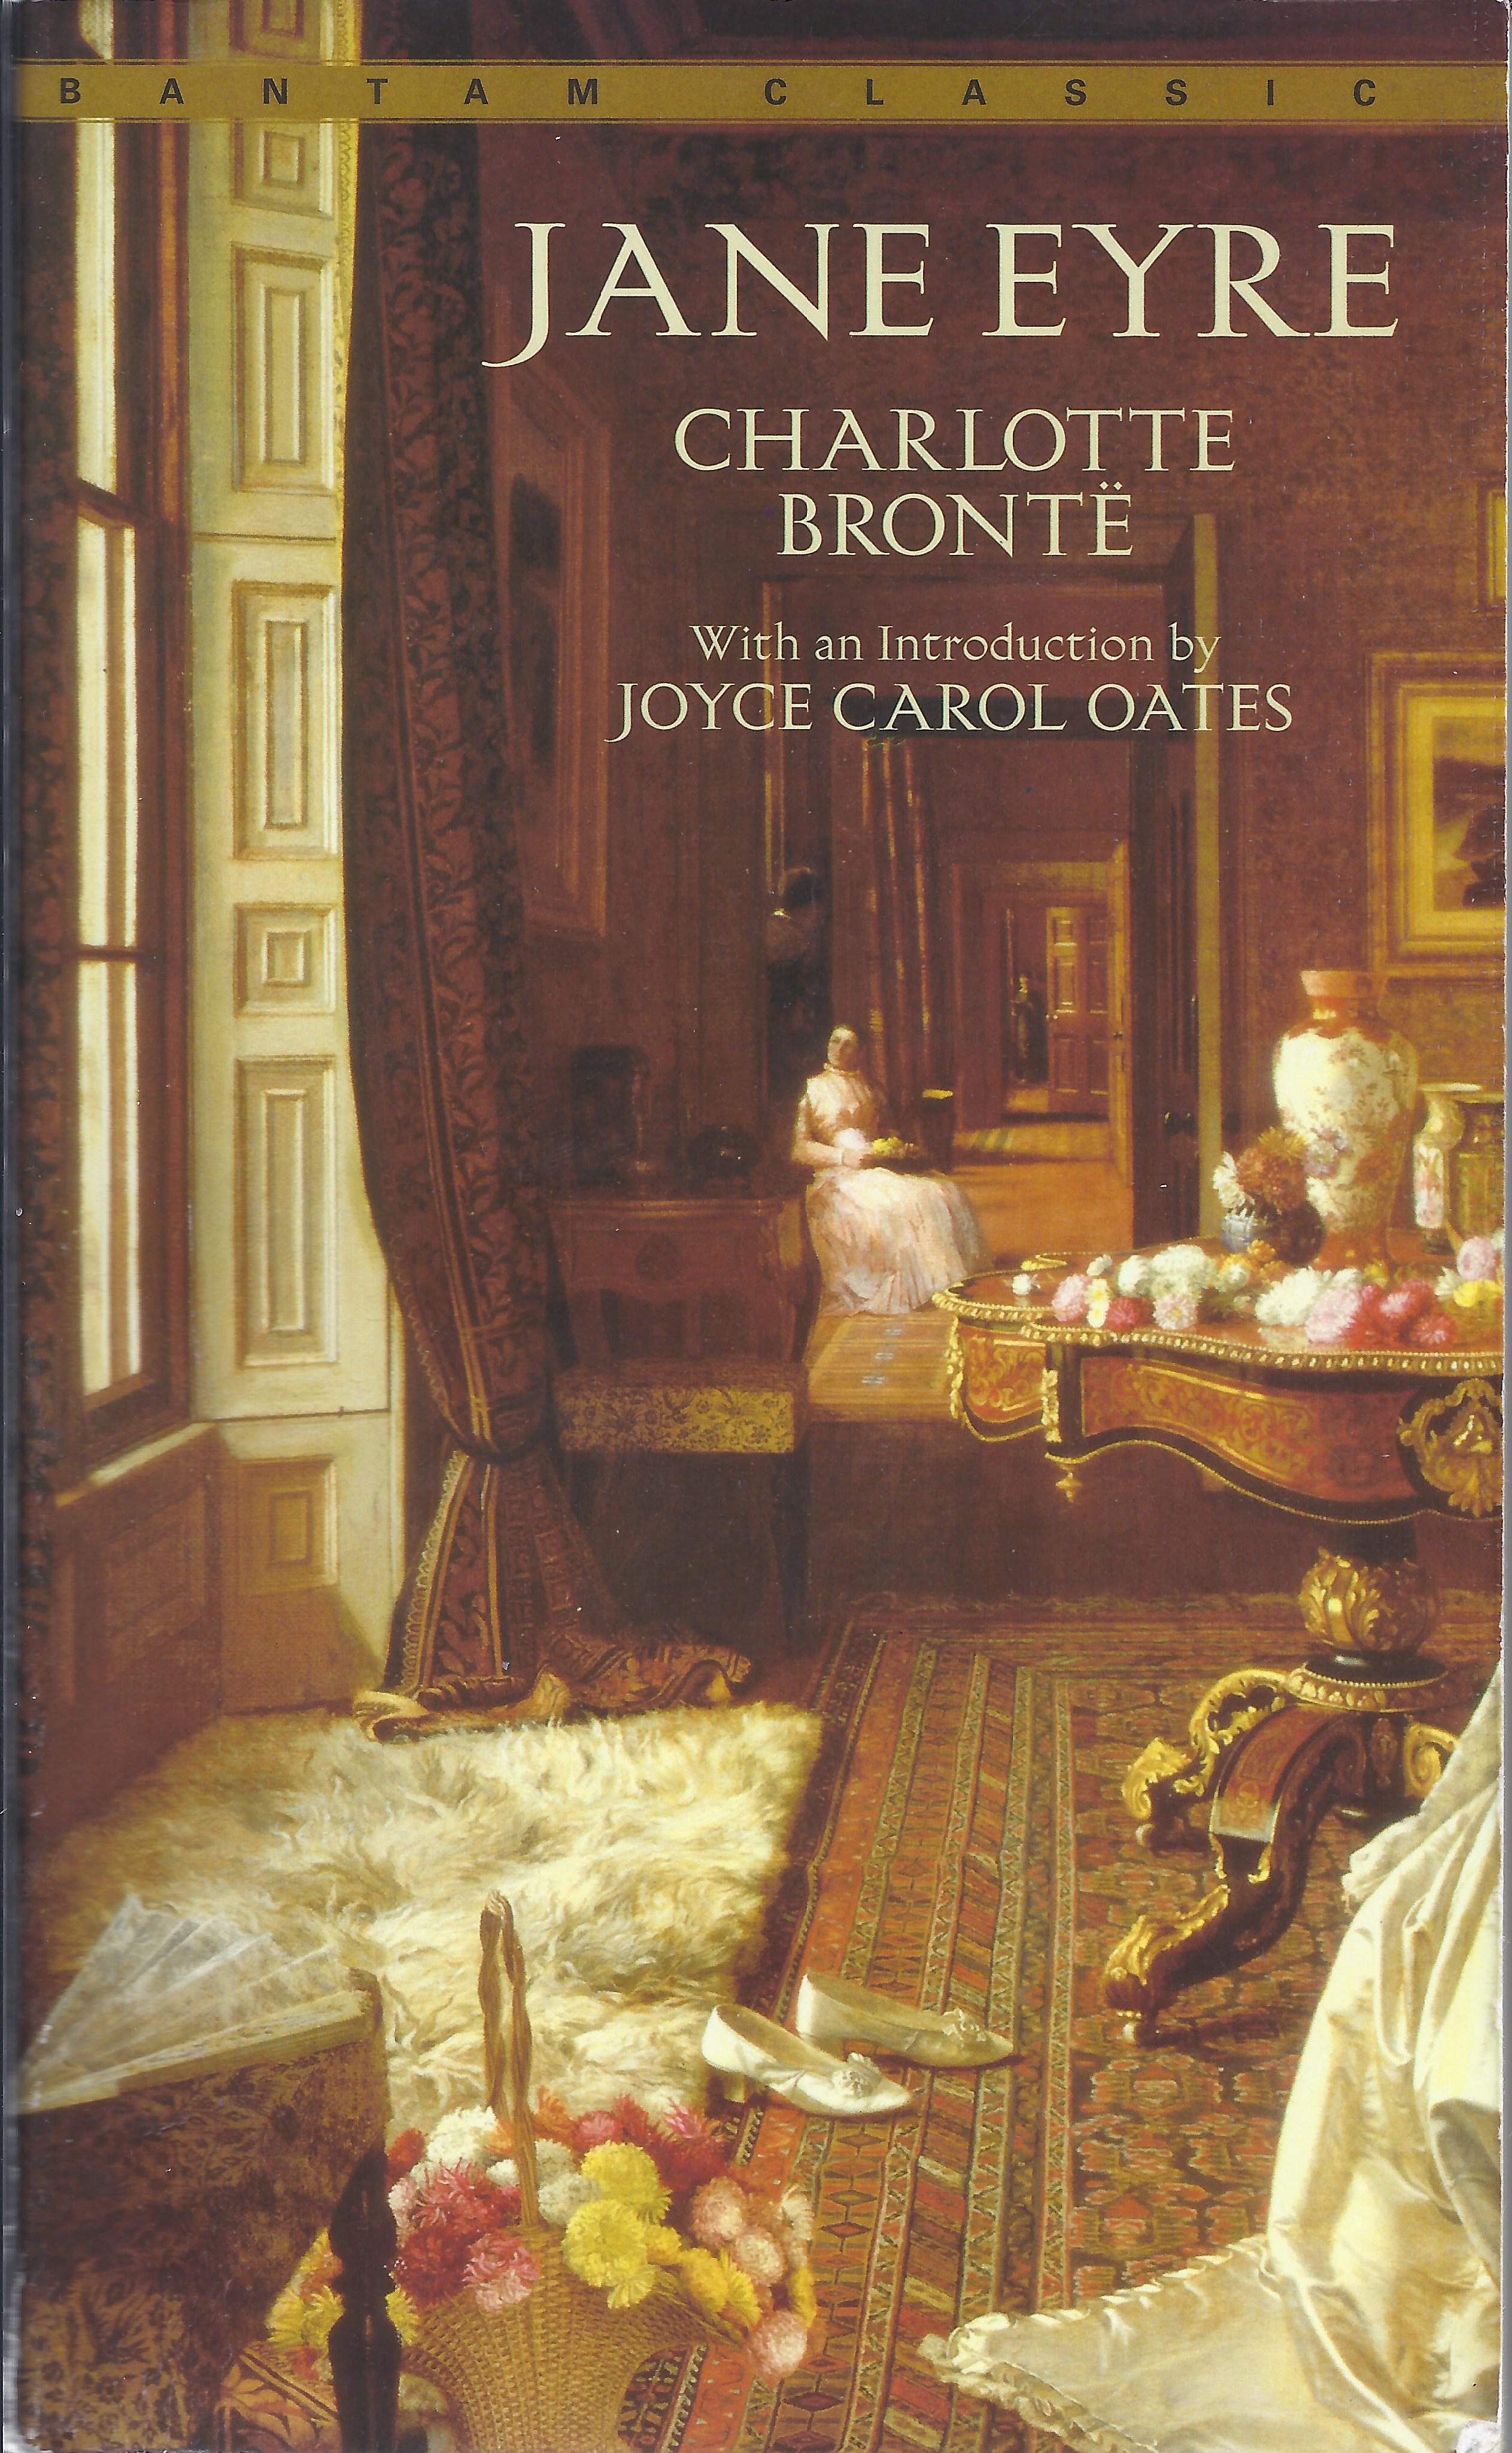 jane eyre plot Looking at jane eyre through the lens of the imperial gothic allows a more  sophisticated understanding of the novel and points toward what the everyday  briton.